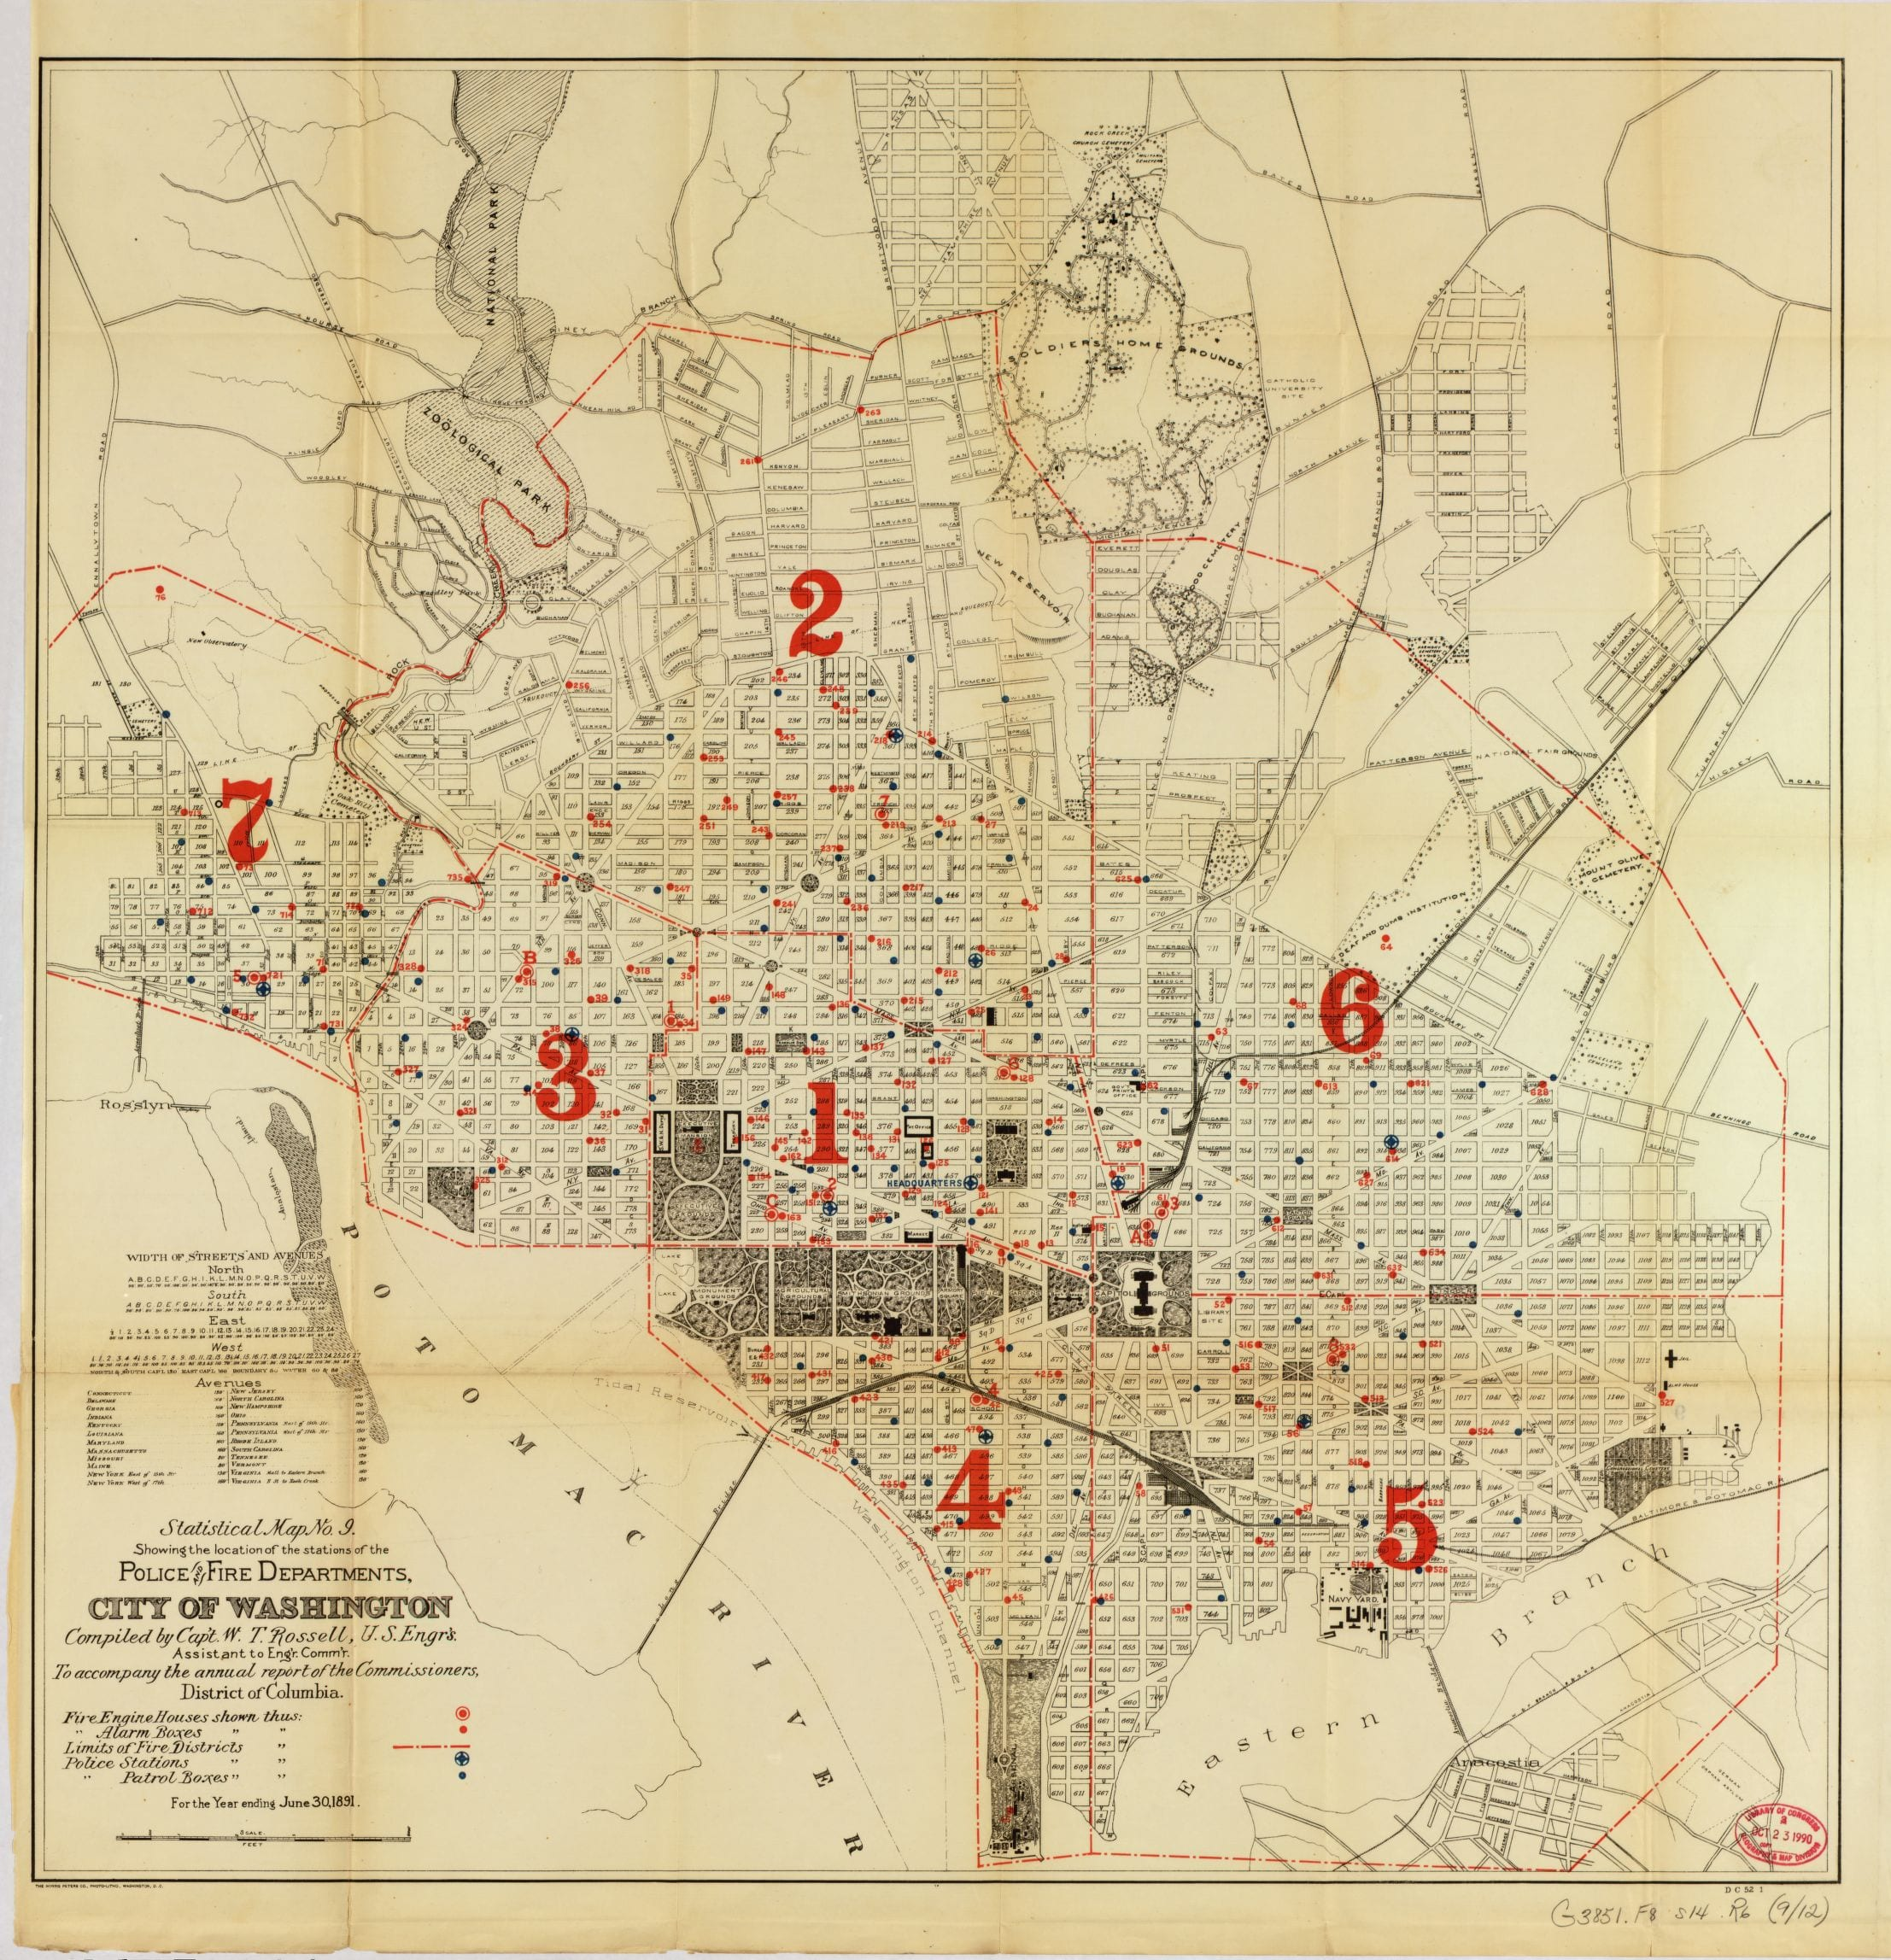 Fire and Police Station location s in 1880